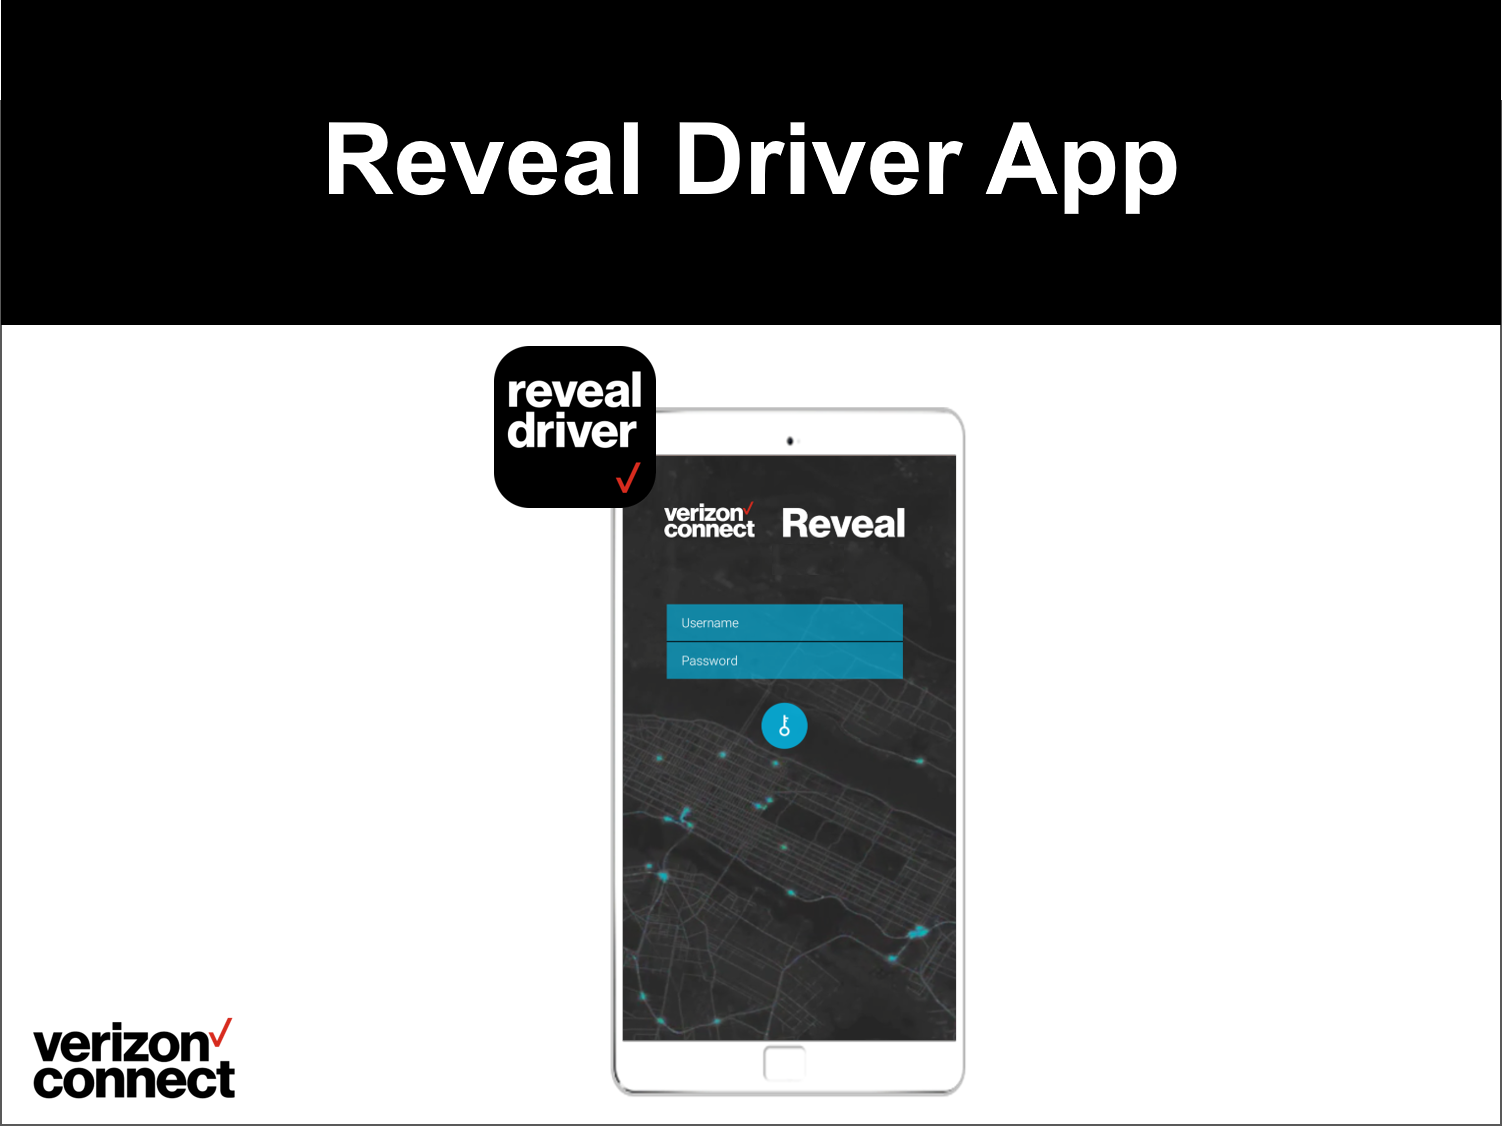 Reveal Driver App eTutorial